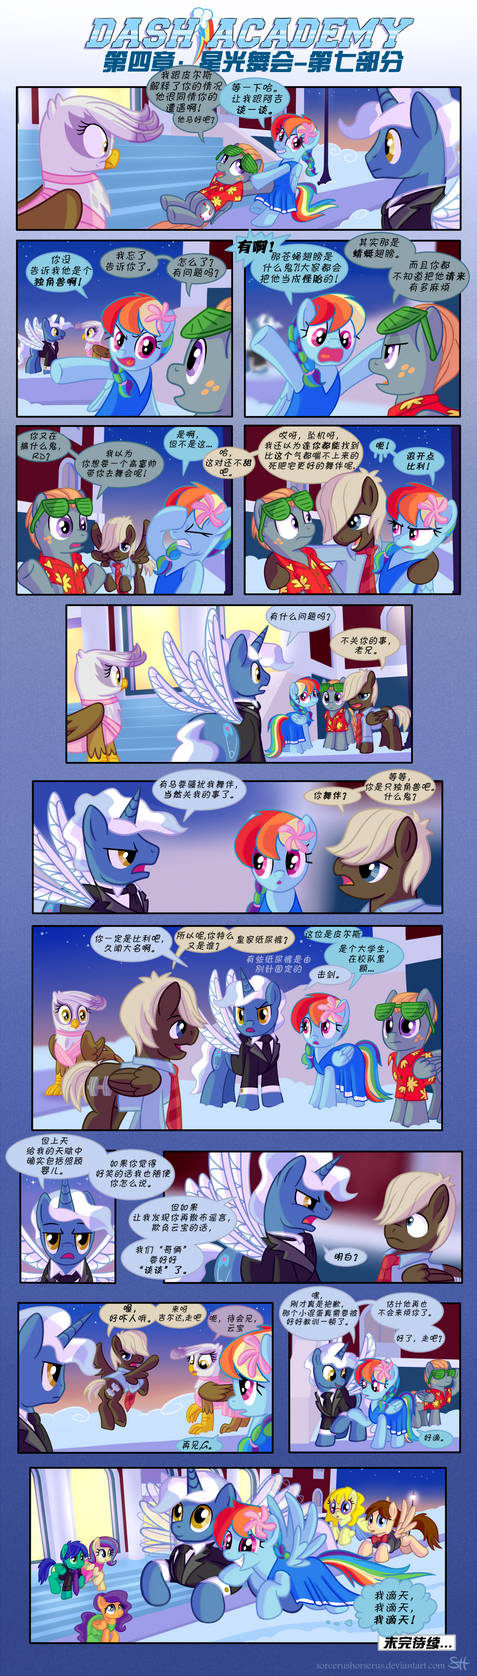 Dash Academy Chapter4 part7 (Chinese)